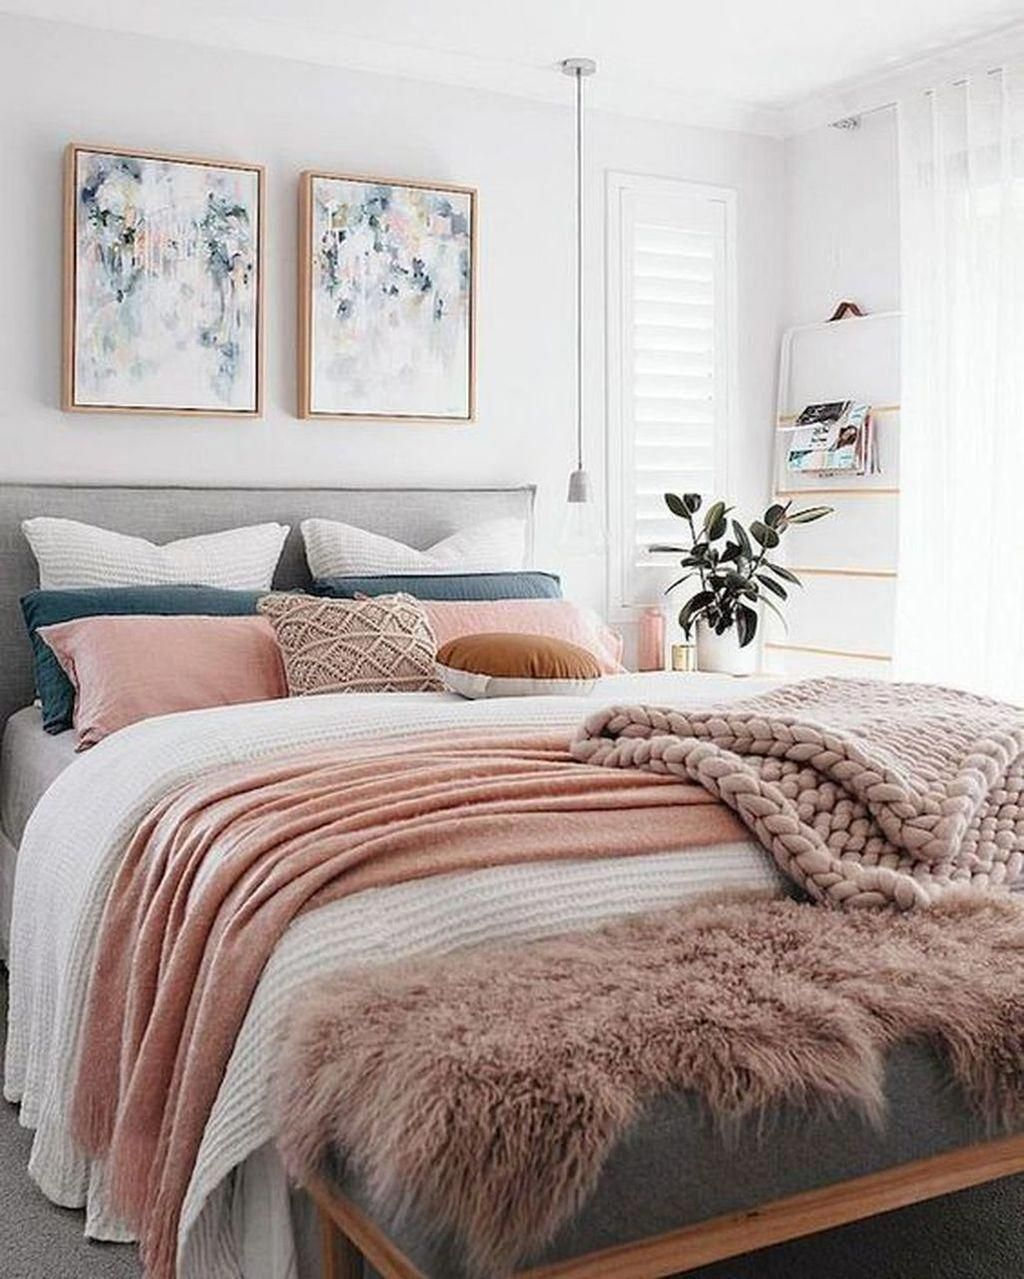 Bedroom Decoration   Great Bedroom Ideas   The Decor Room 20190801 is part of Bedroom decor -